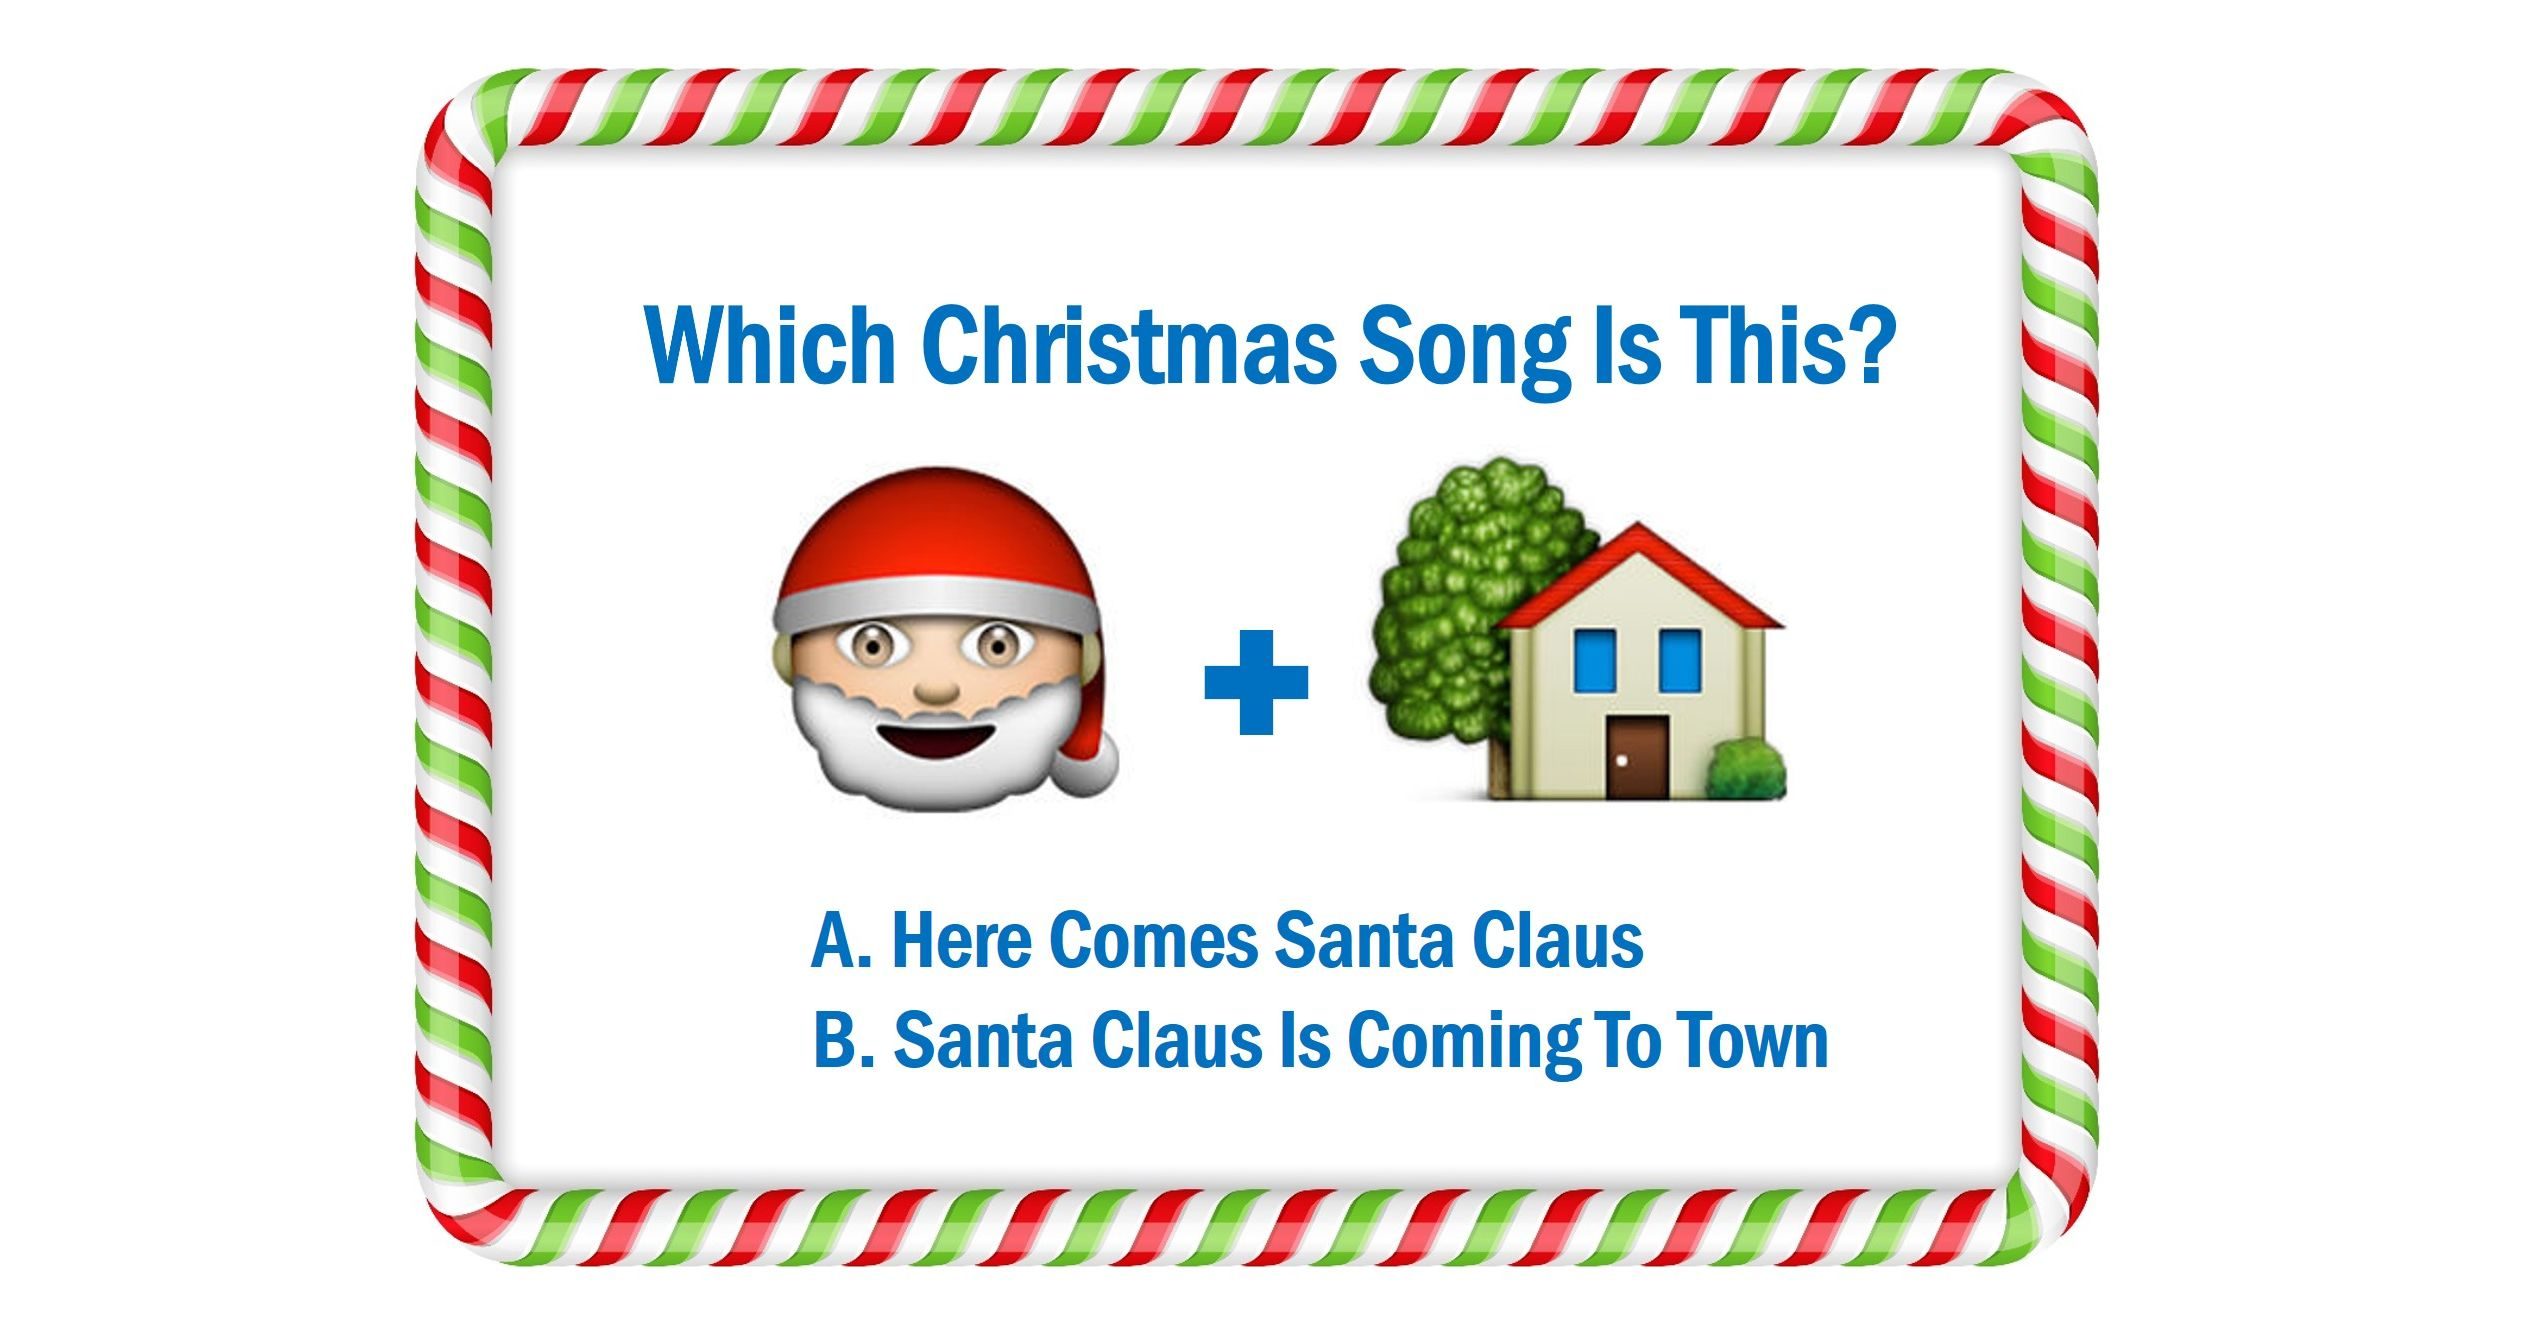 Can You Guess These 14 Christmas Songs From The Emojis? | Playbuzz